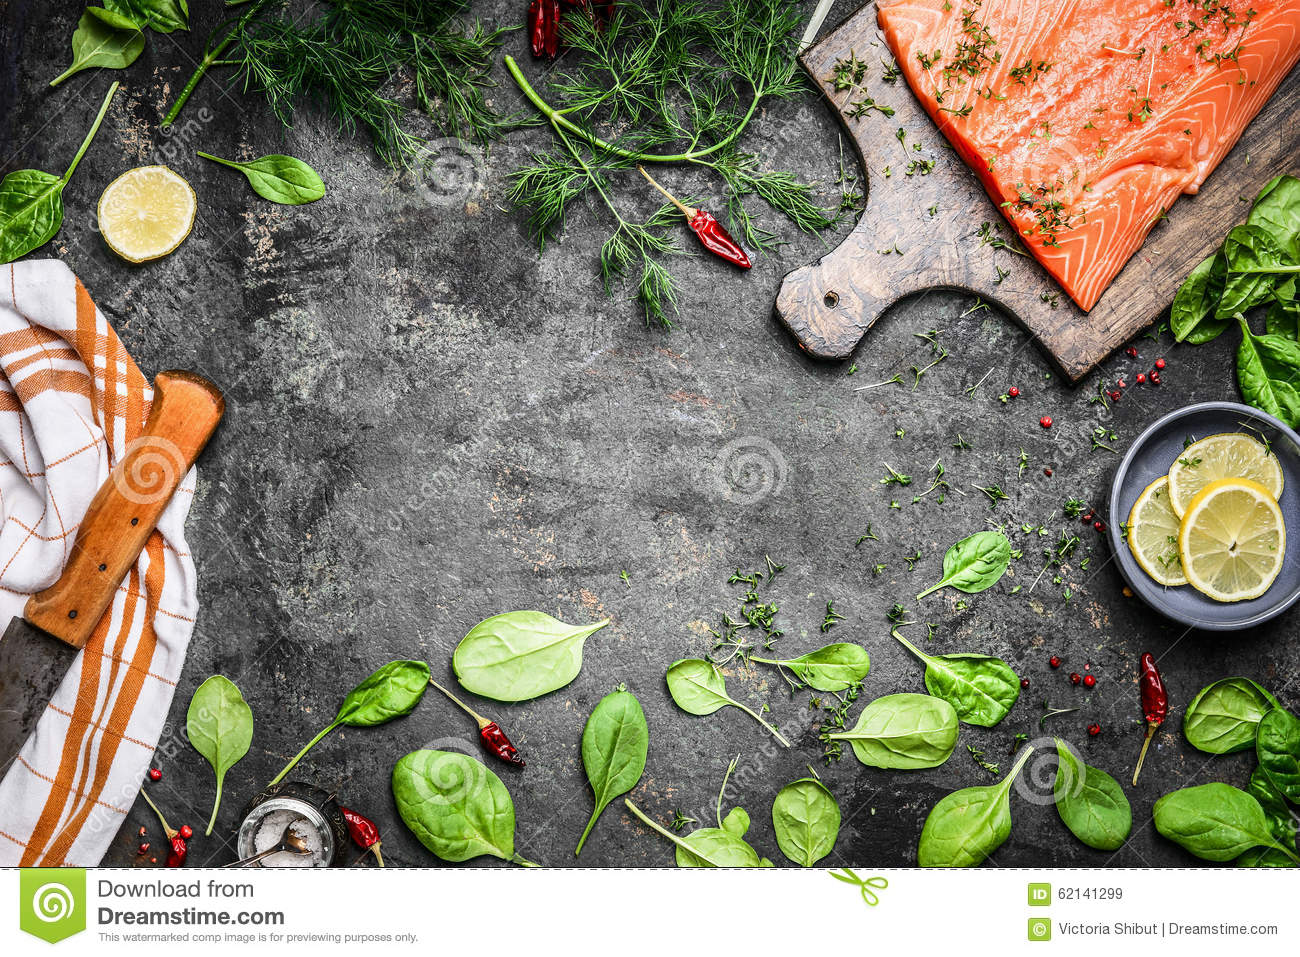 Salmon fish fillets on cutting board and fresh ingredients for cooking on rustic background, top view